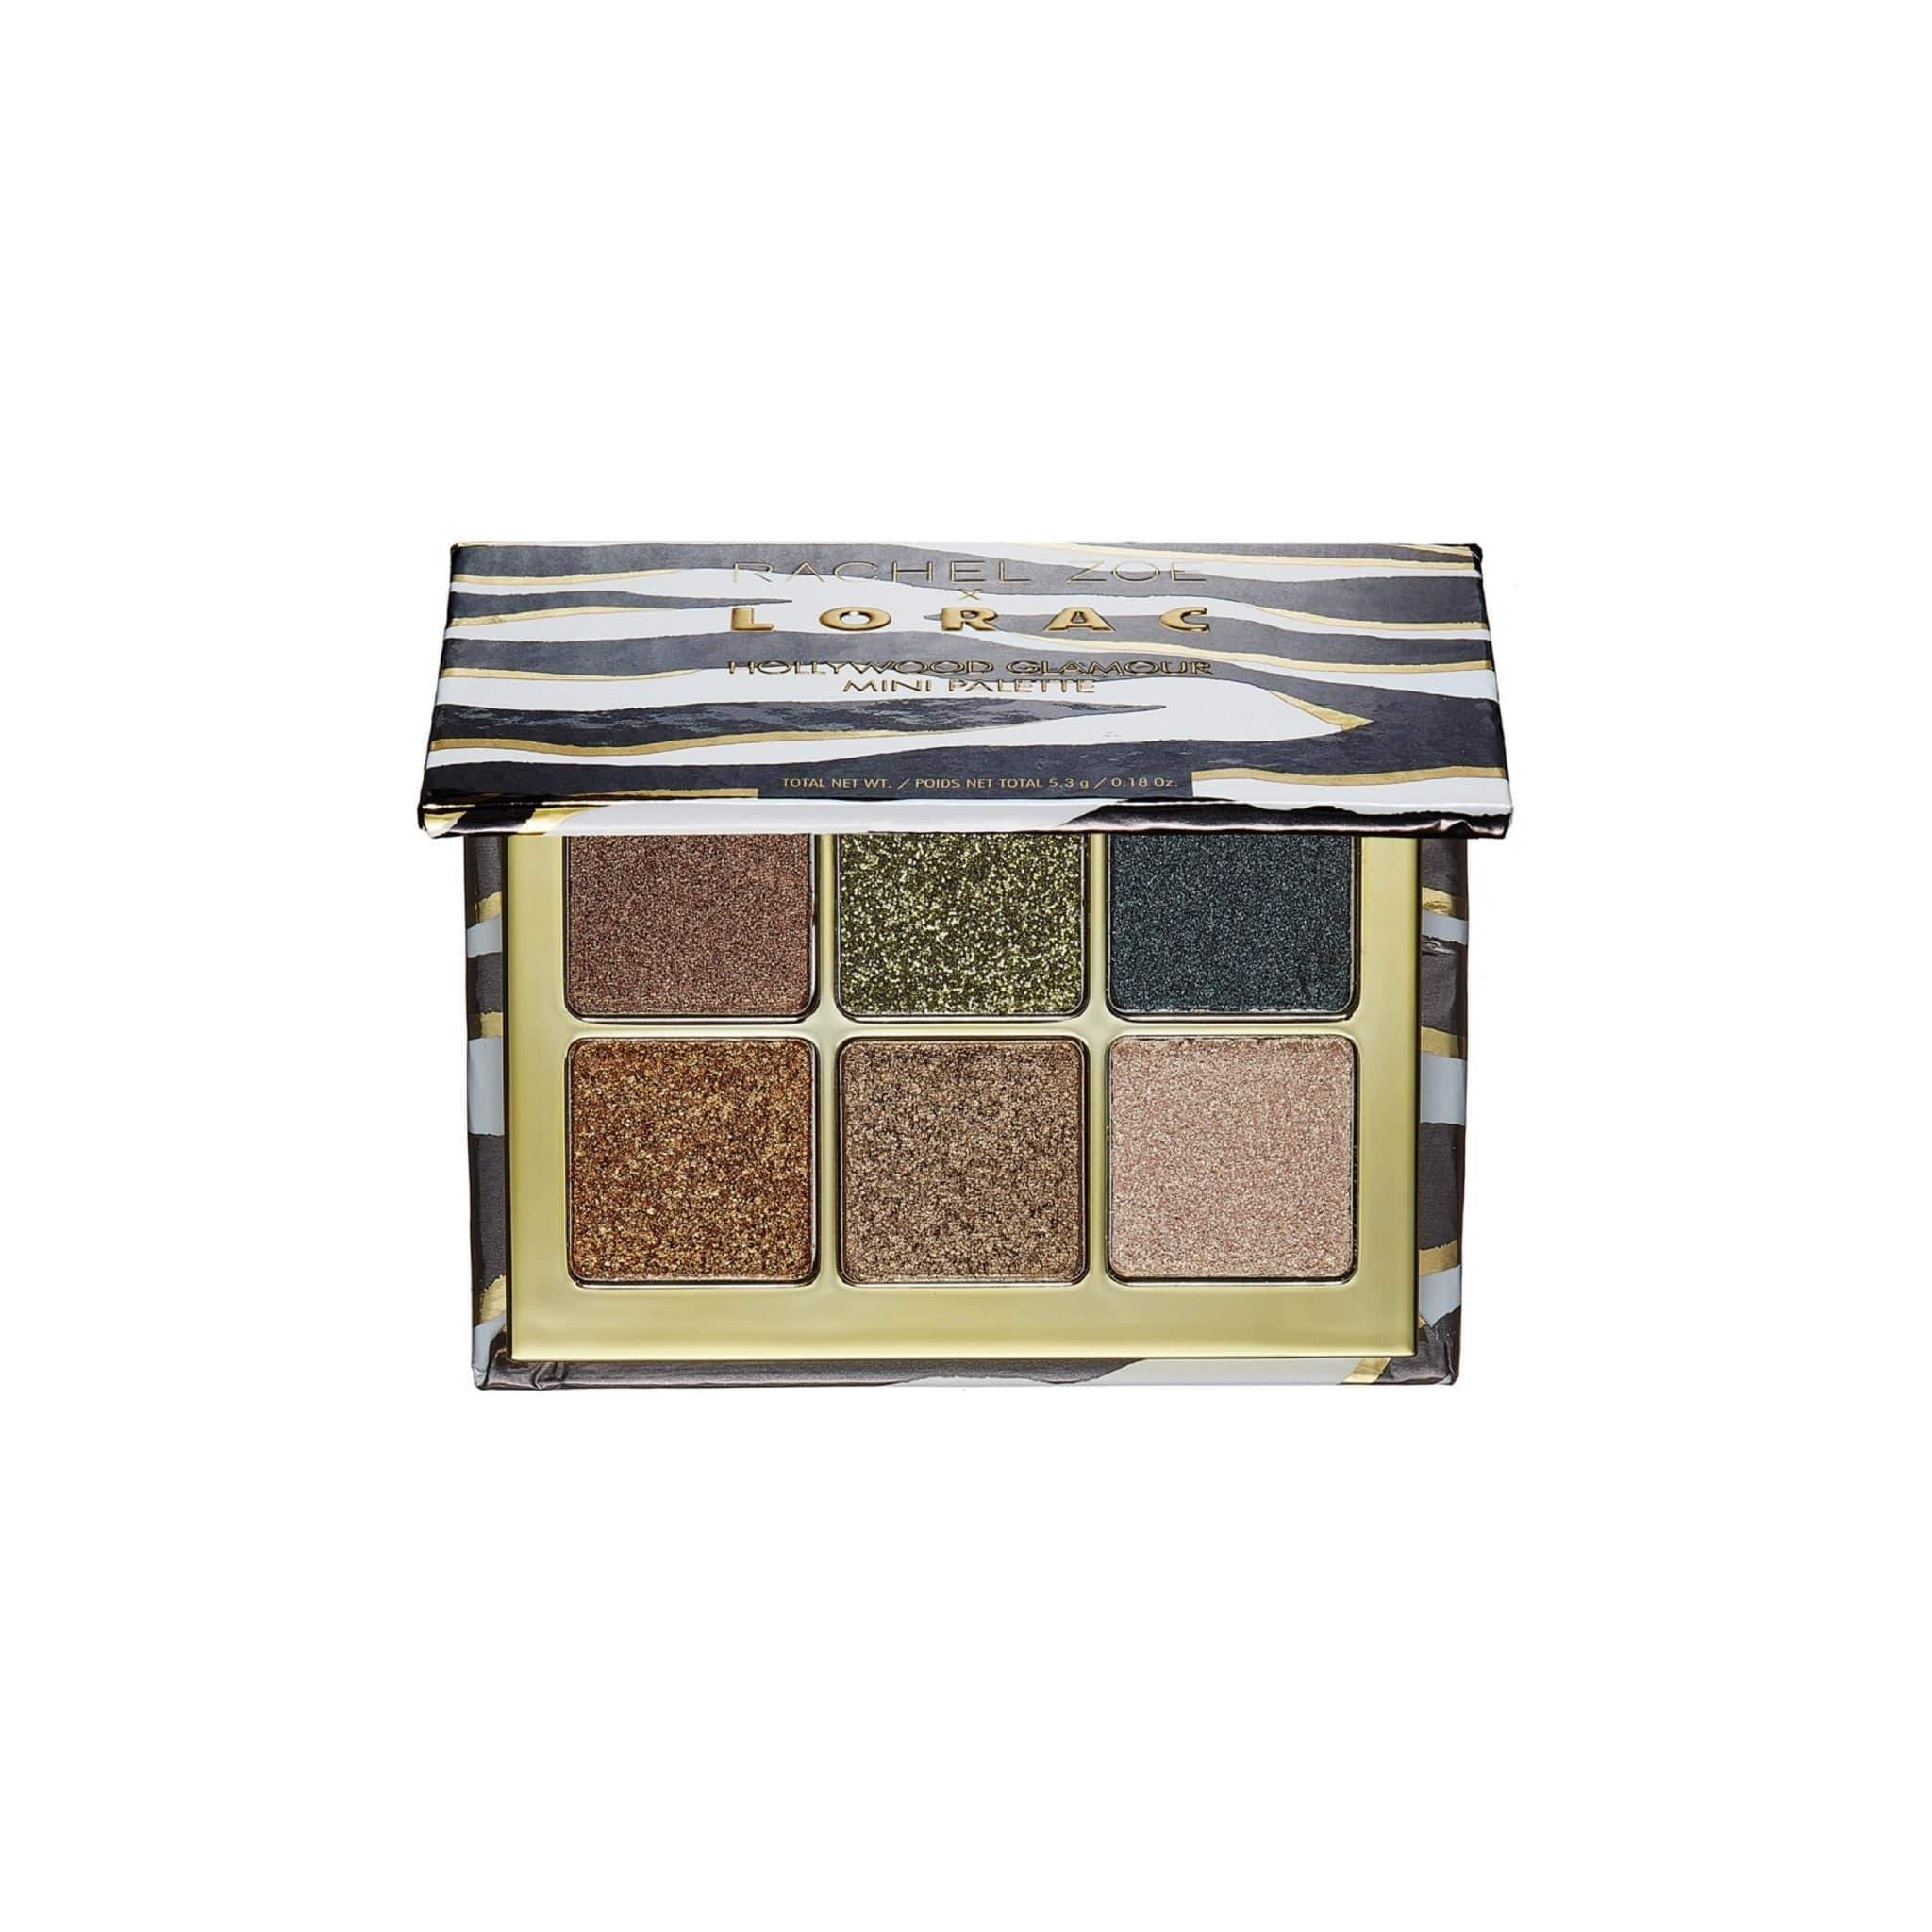 Lorac Eyeshadow RACHEL ZOE X LORAC Hollywood Glamour Mini Palette: Golden Eyes